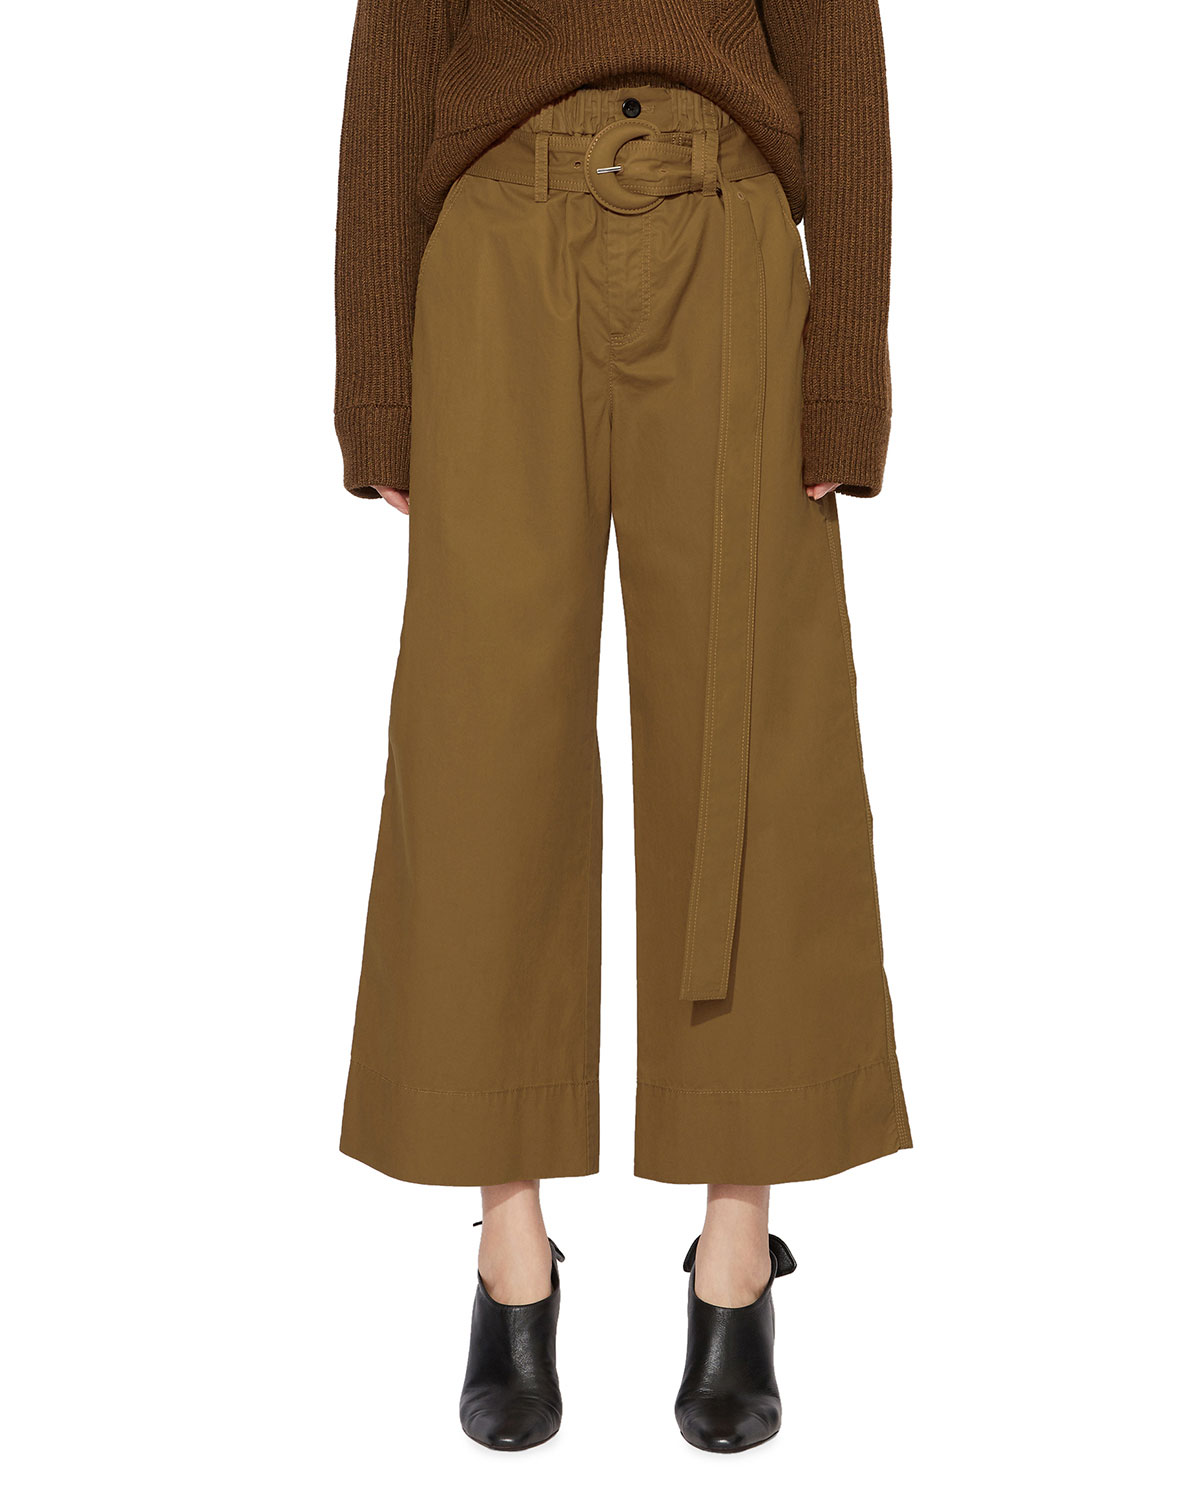 Proenza Schouler White Label Pants BELTED DRAWSTRING WIDE-LEG ANKLE PANTS